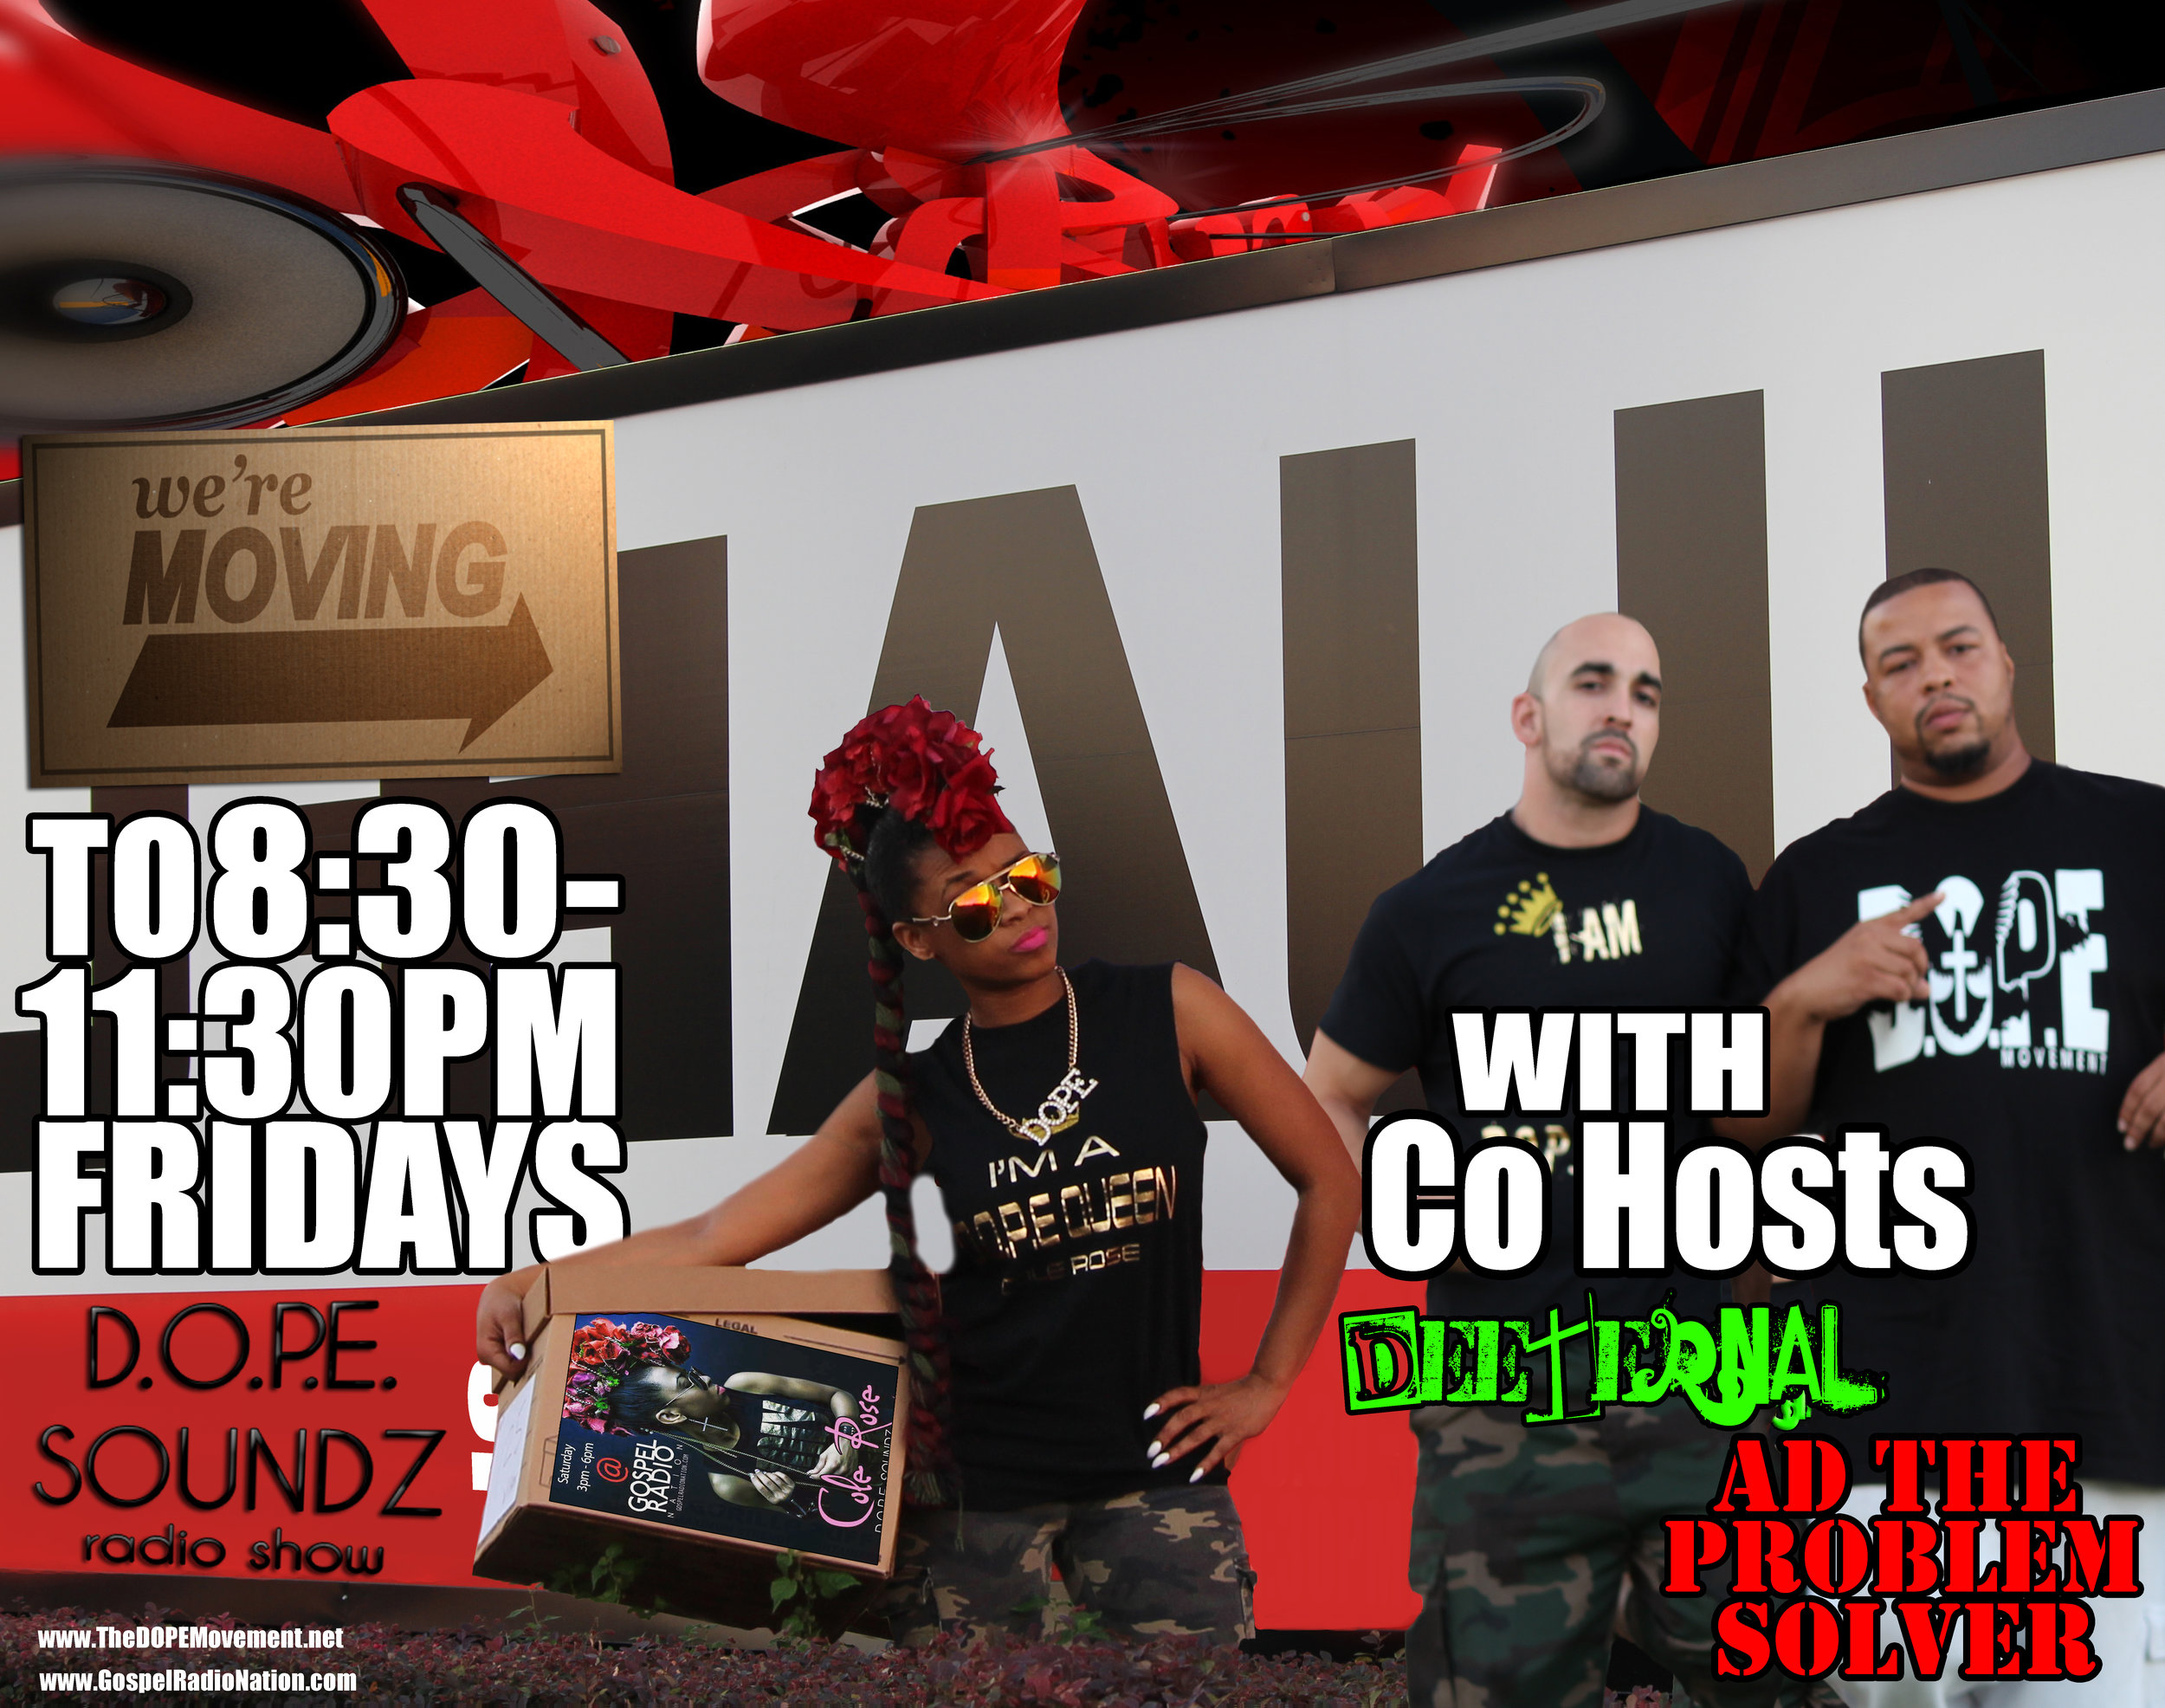 That's right!    DOPE SOUNDZ is moving to Friday Nights from 8:30-11:30PM. Join us every Friday night by clicking the tab at the top of the screen labeled DOPE SOUNDZ LIVE, or go to www.gospelradionation.com     We look forward to hearing you call in!!!